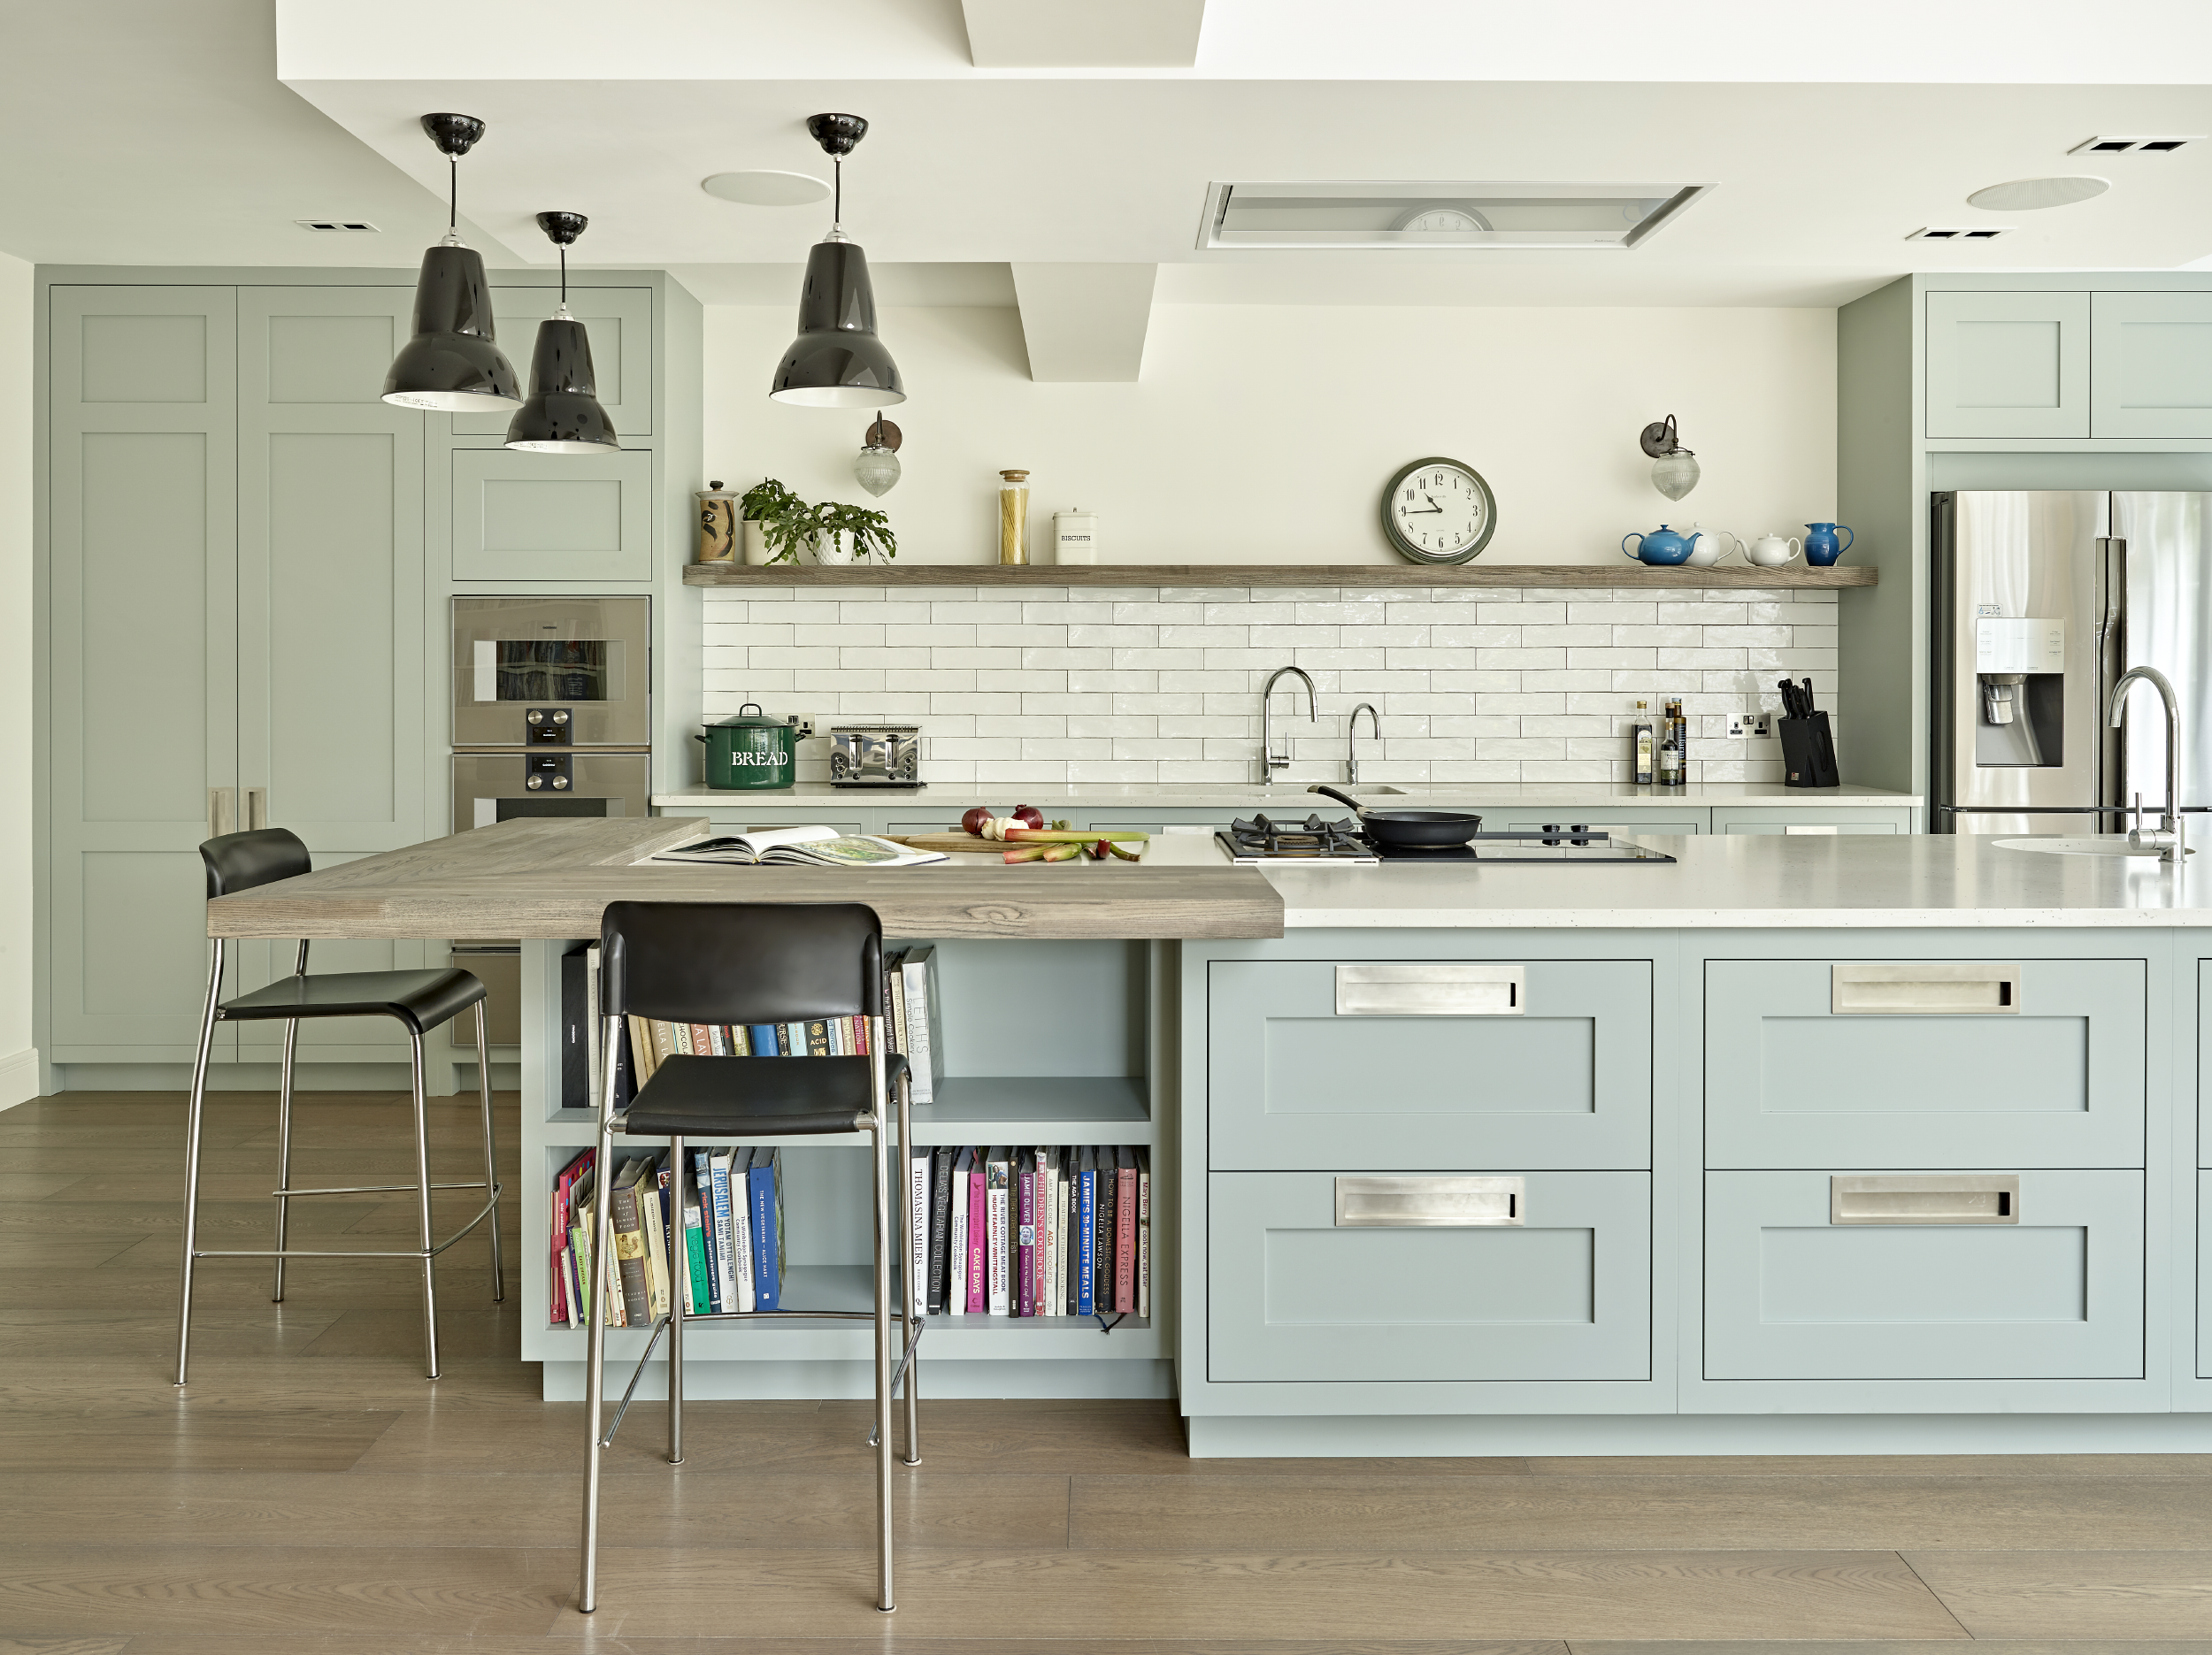 Modern Open Plan Shaker Kitchen with Large Island and Breakfast Bar